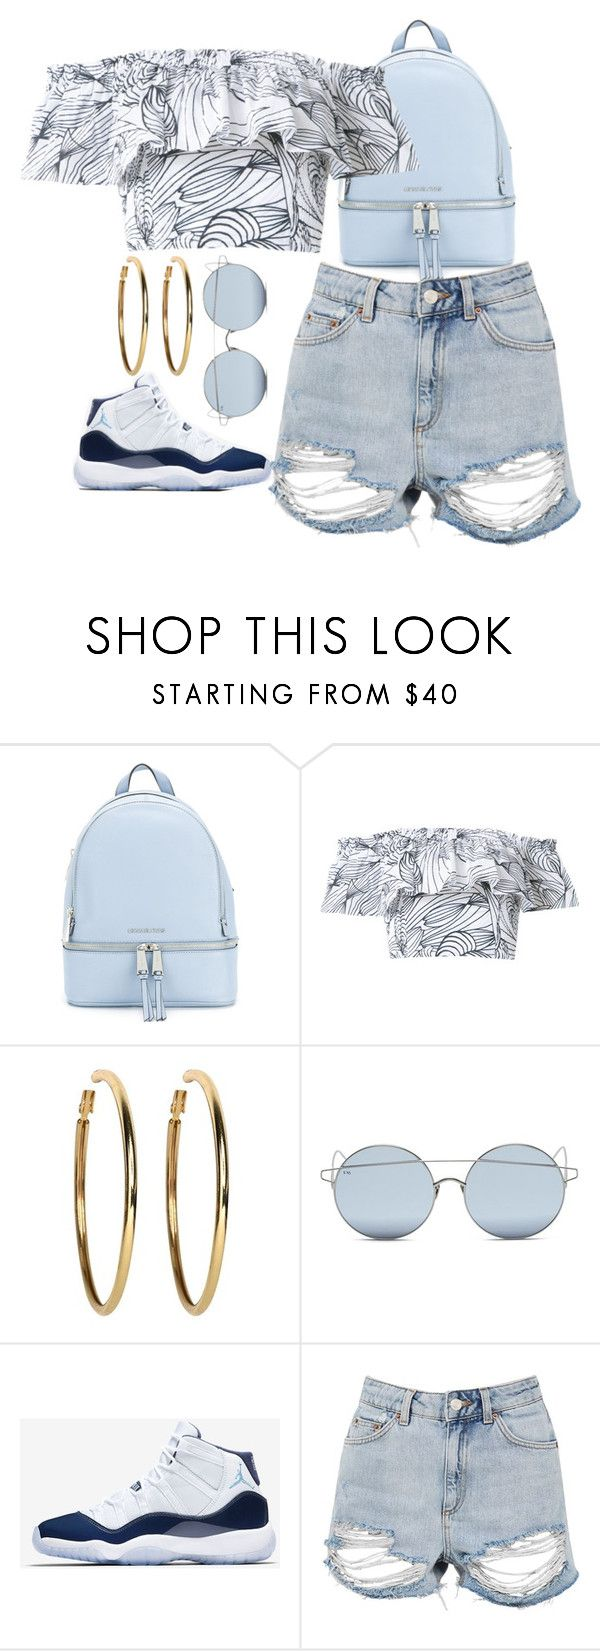 """""""Untitled #113"""" by tess1800 on Polyvore featuring MICHAEL Michael Kors, Isolda, Kenneth Jay Lane, For Art's Sake, NIKE, Topshop and Blue"""